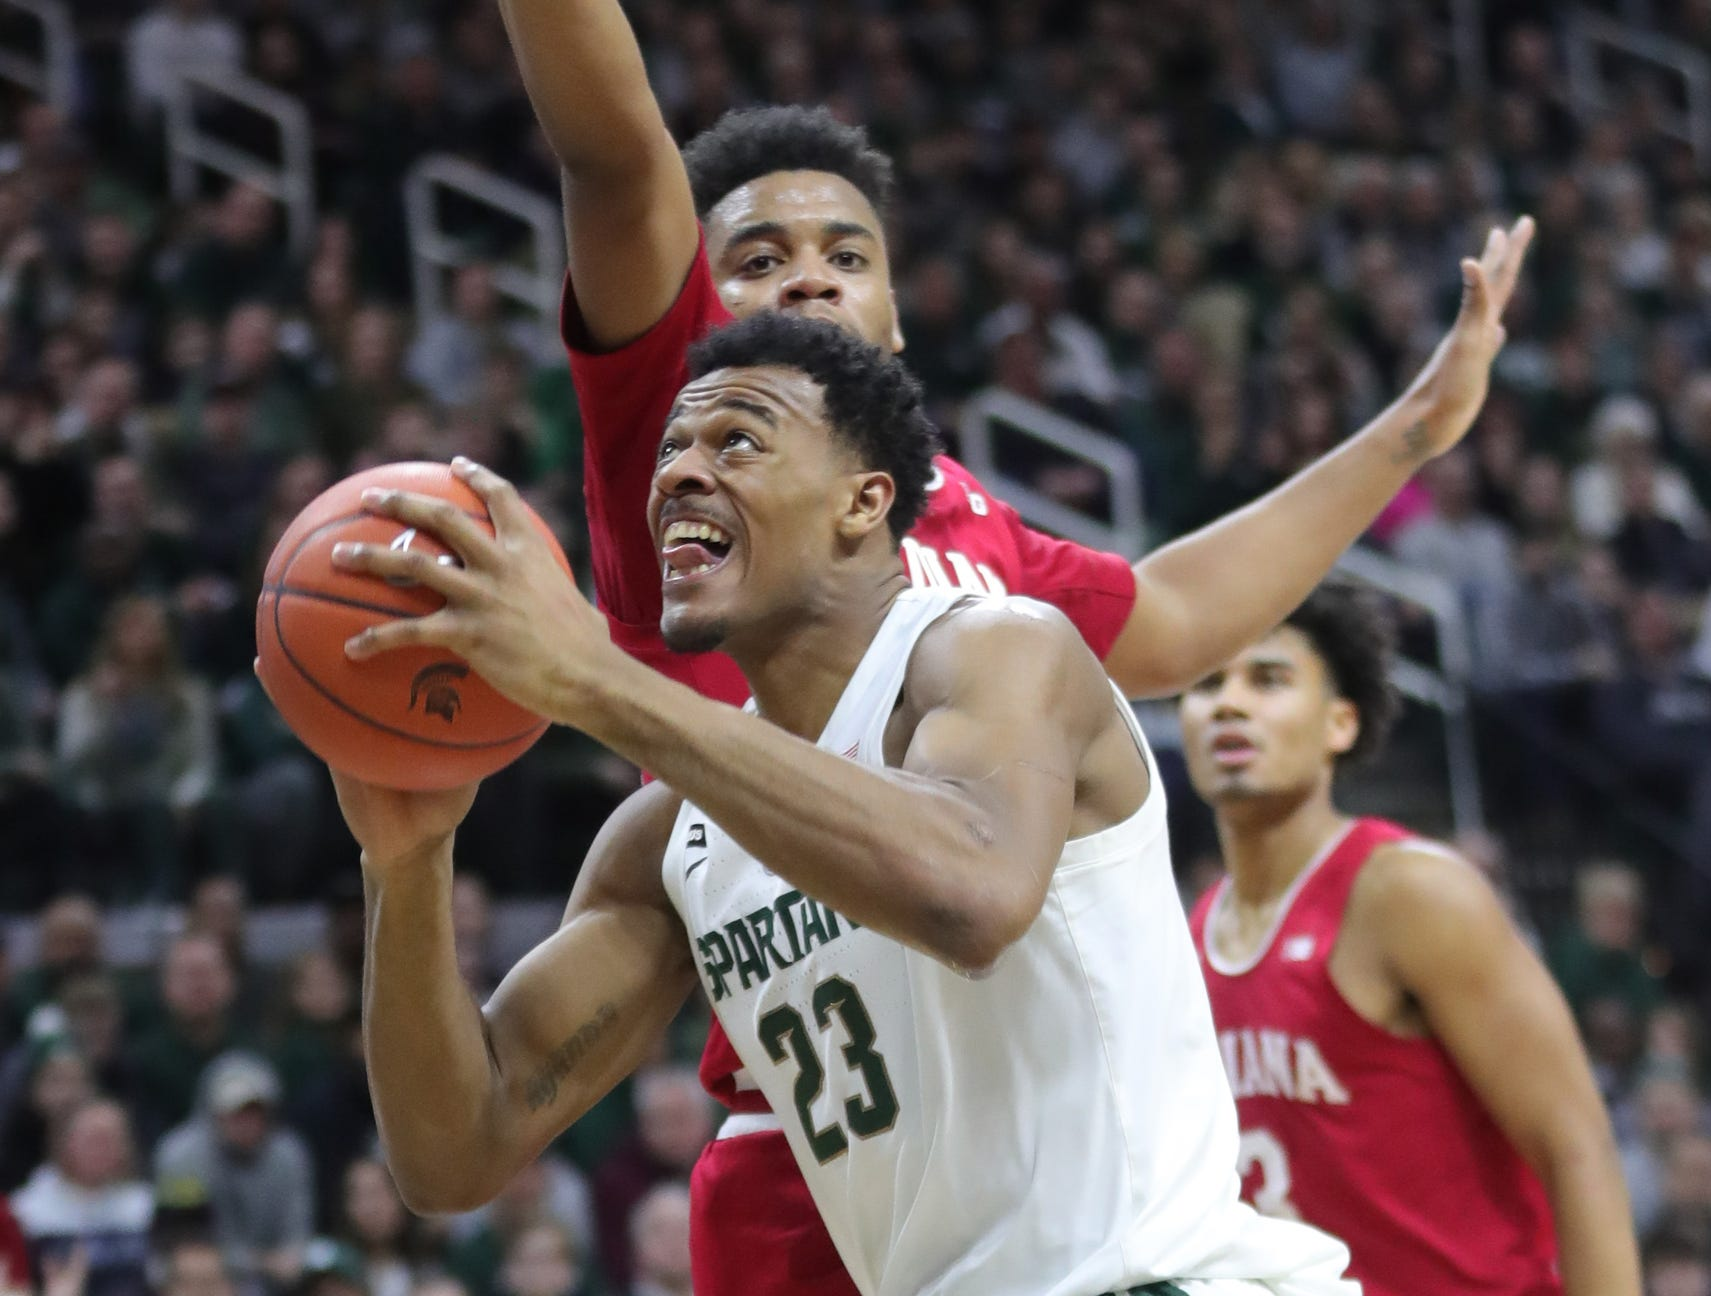 Michigan State forward Xavier Tillman scores against Indiana forward Juwan Morgan during first half action Saturday, Feb. 2, 2019 at the Breslin Center in East Lansing, Mich.